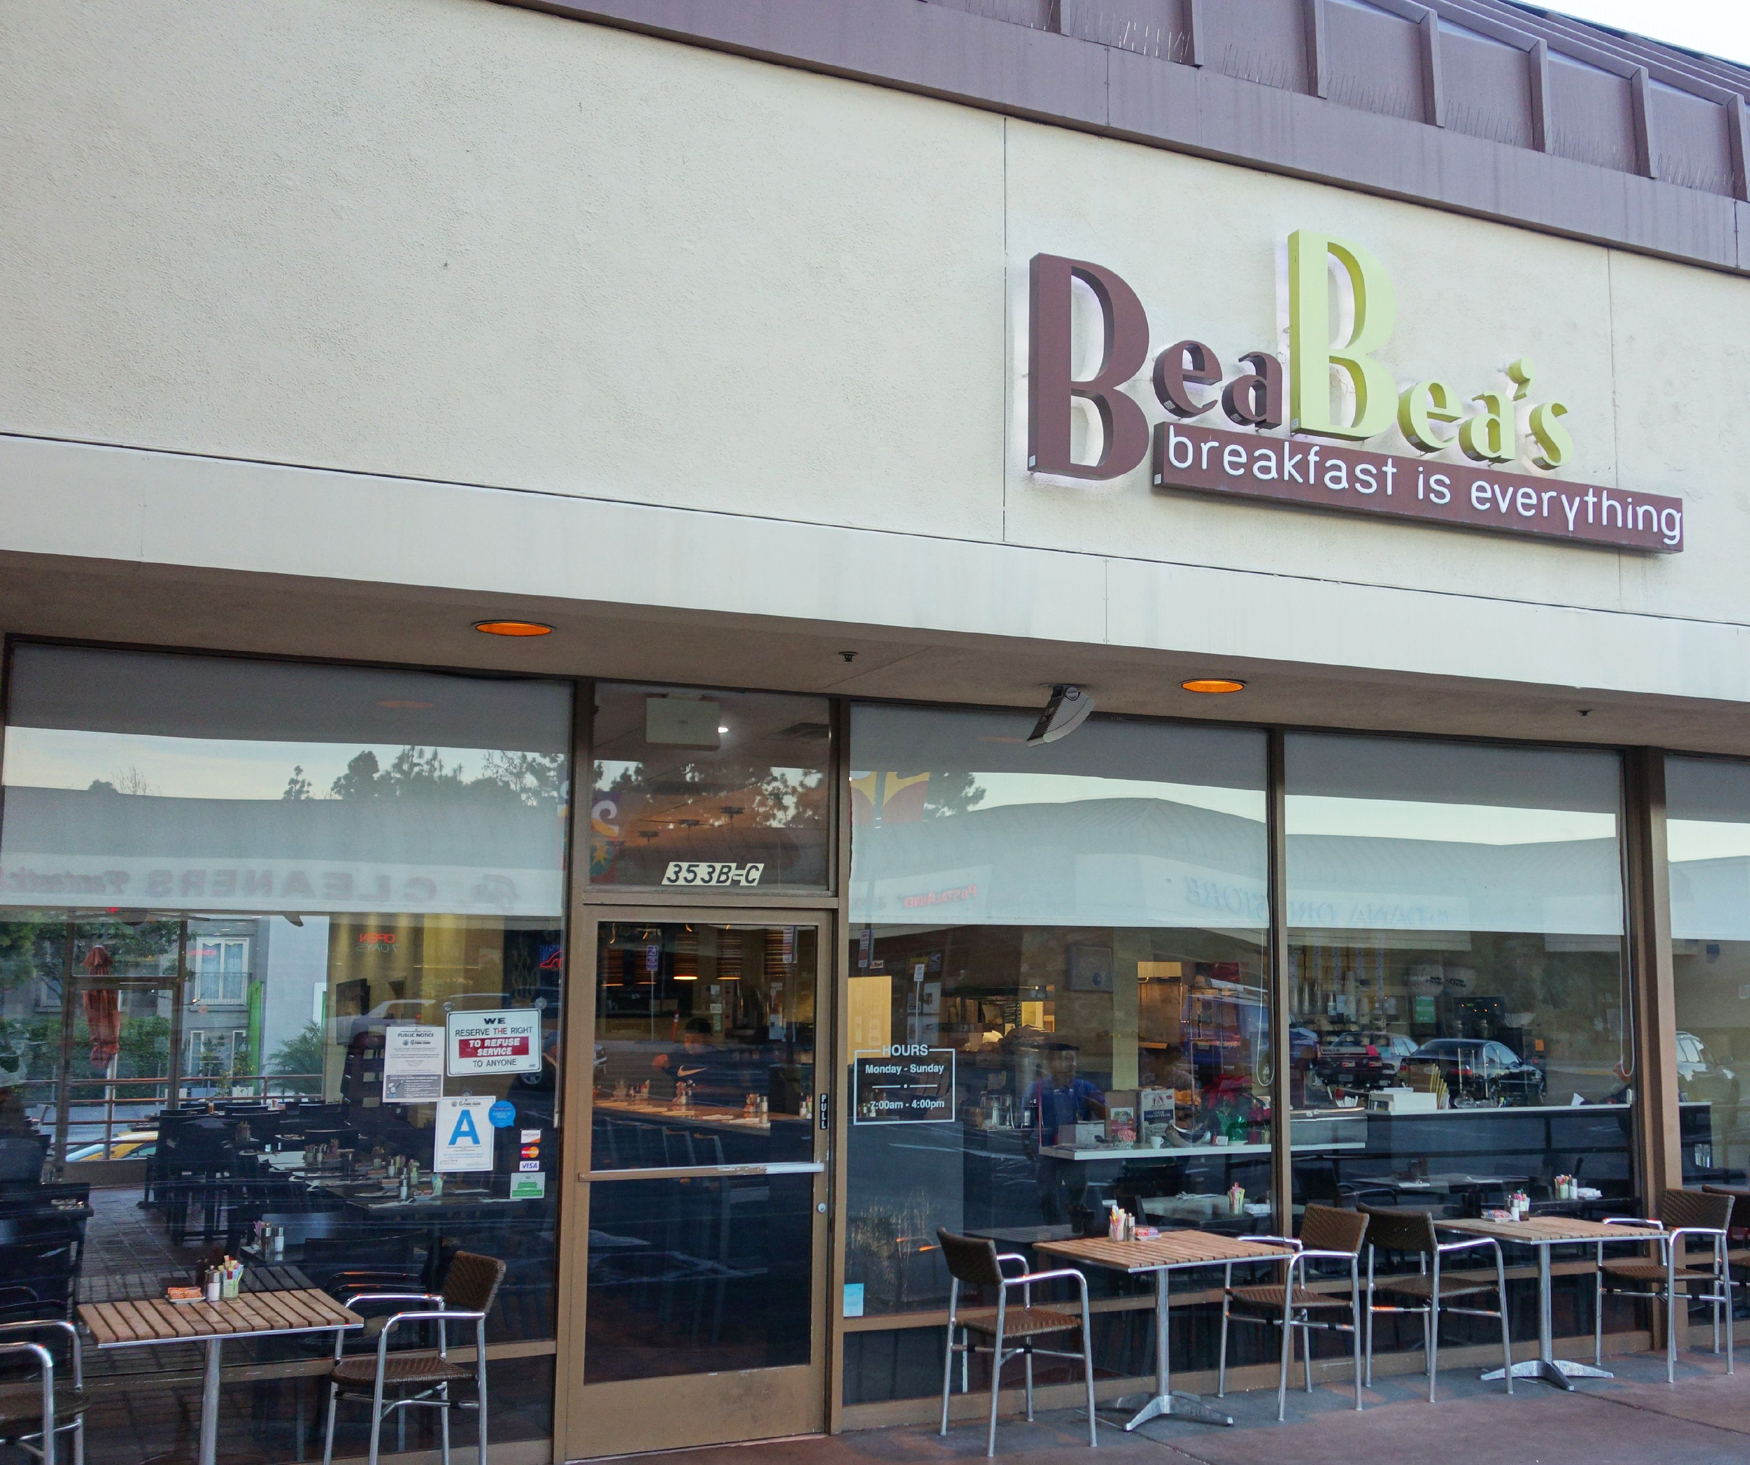 Brunch Doesn't Need to be Fancy to be Delicious - BeaBea's